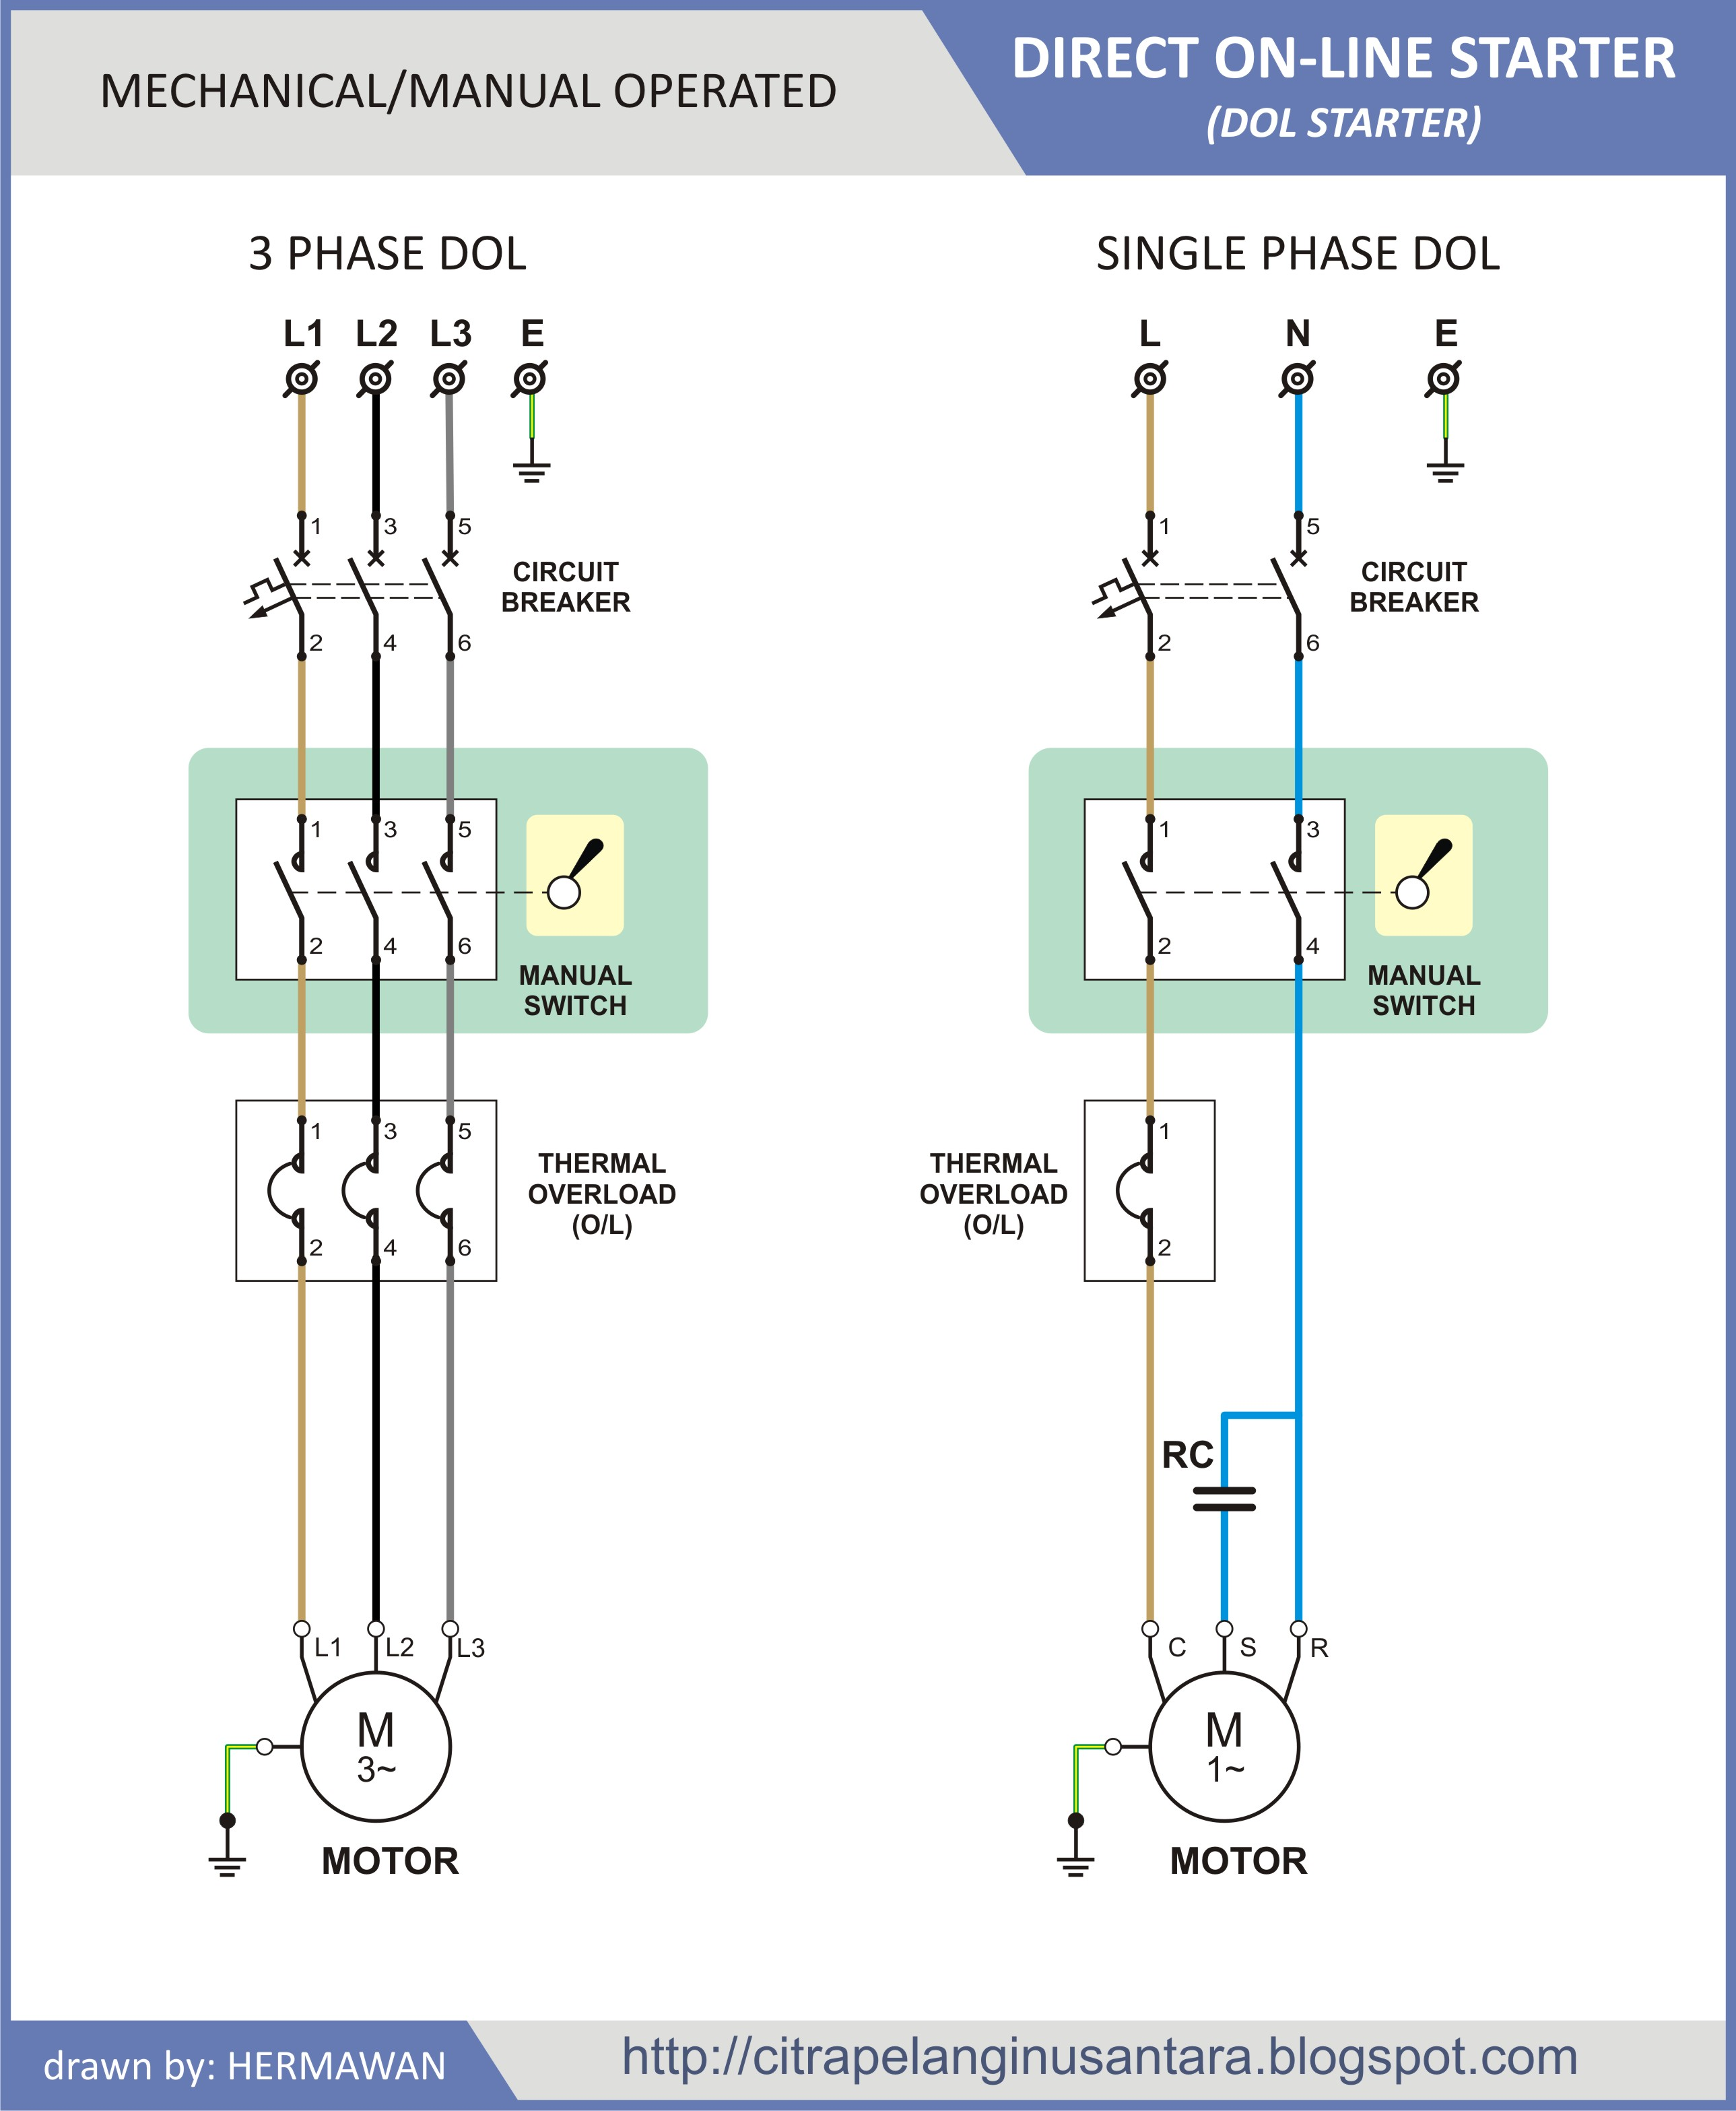 3 phase dol wiring diagram leviton way dimmer switch citra pelangi nusantara direct on line starter